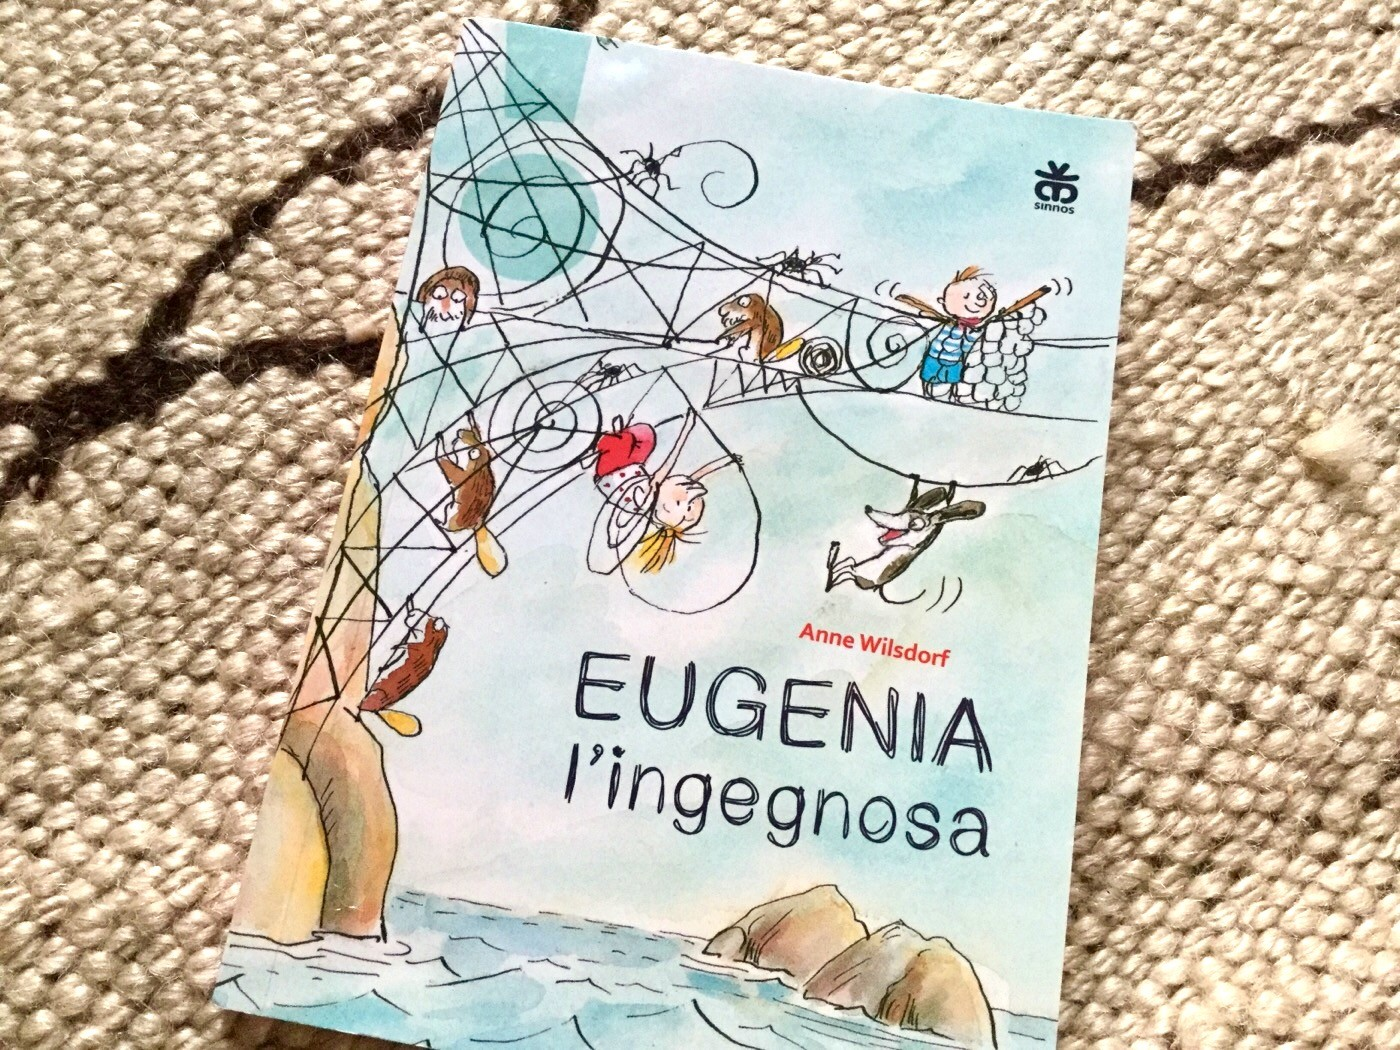 EUGENIA L'INGEGNOSA Anne Wilsdorf - Sinnos - 2016